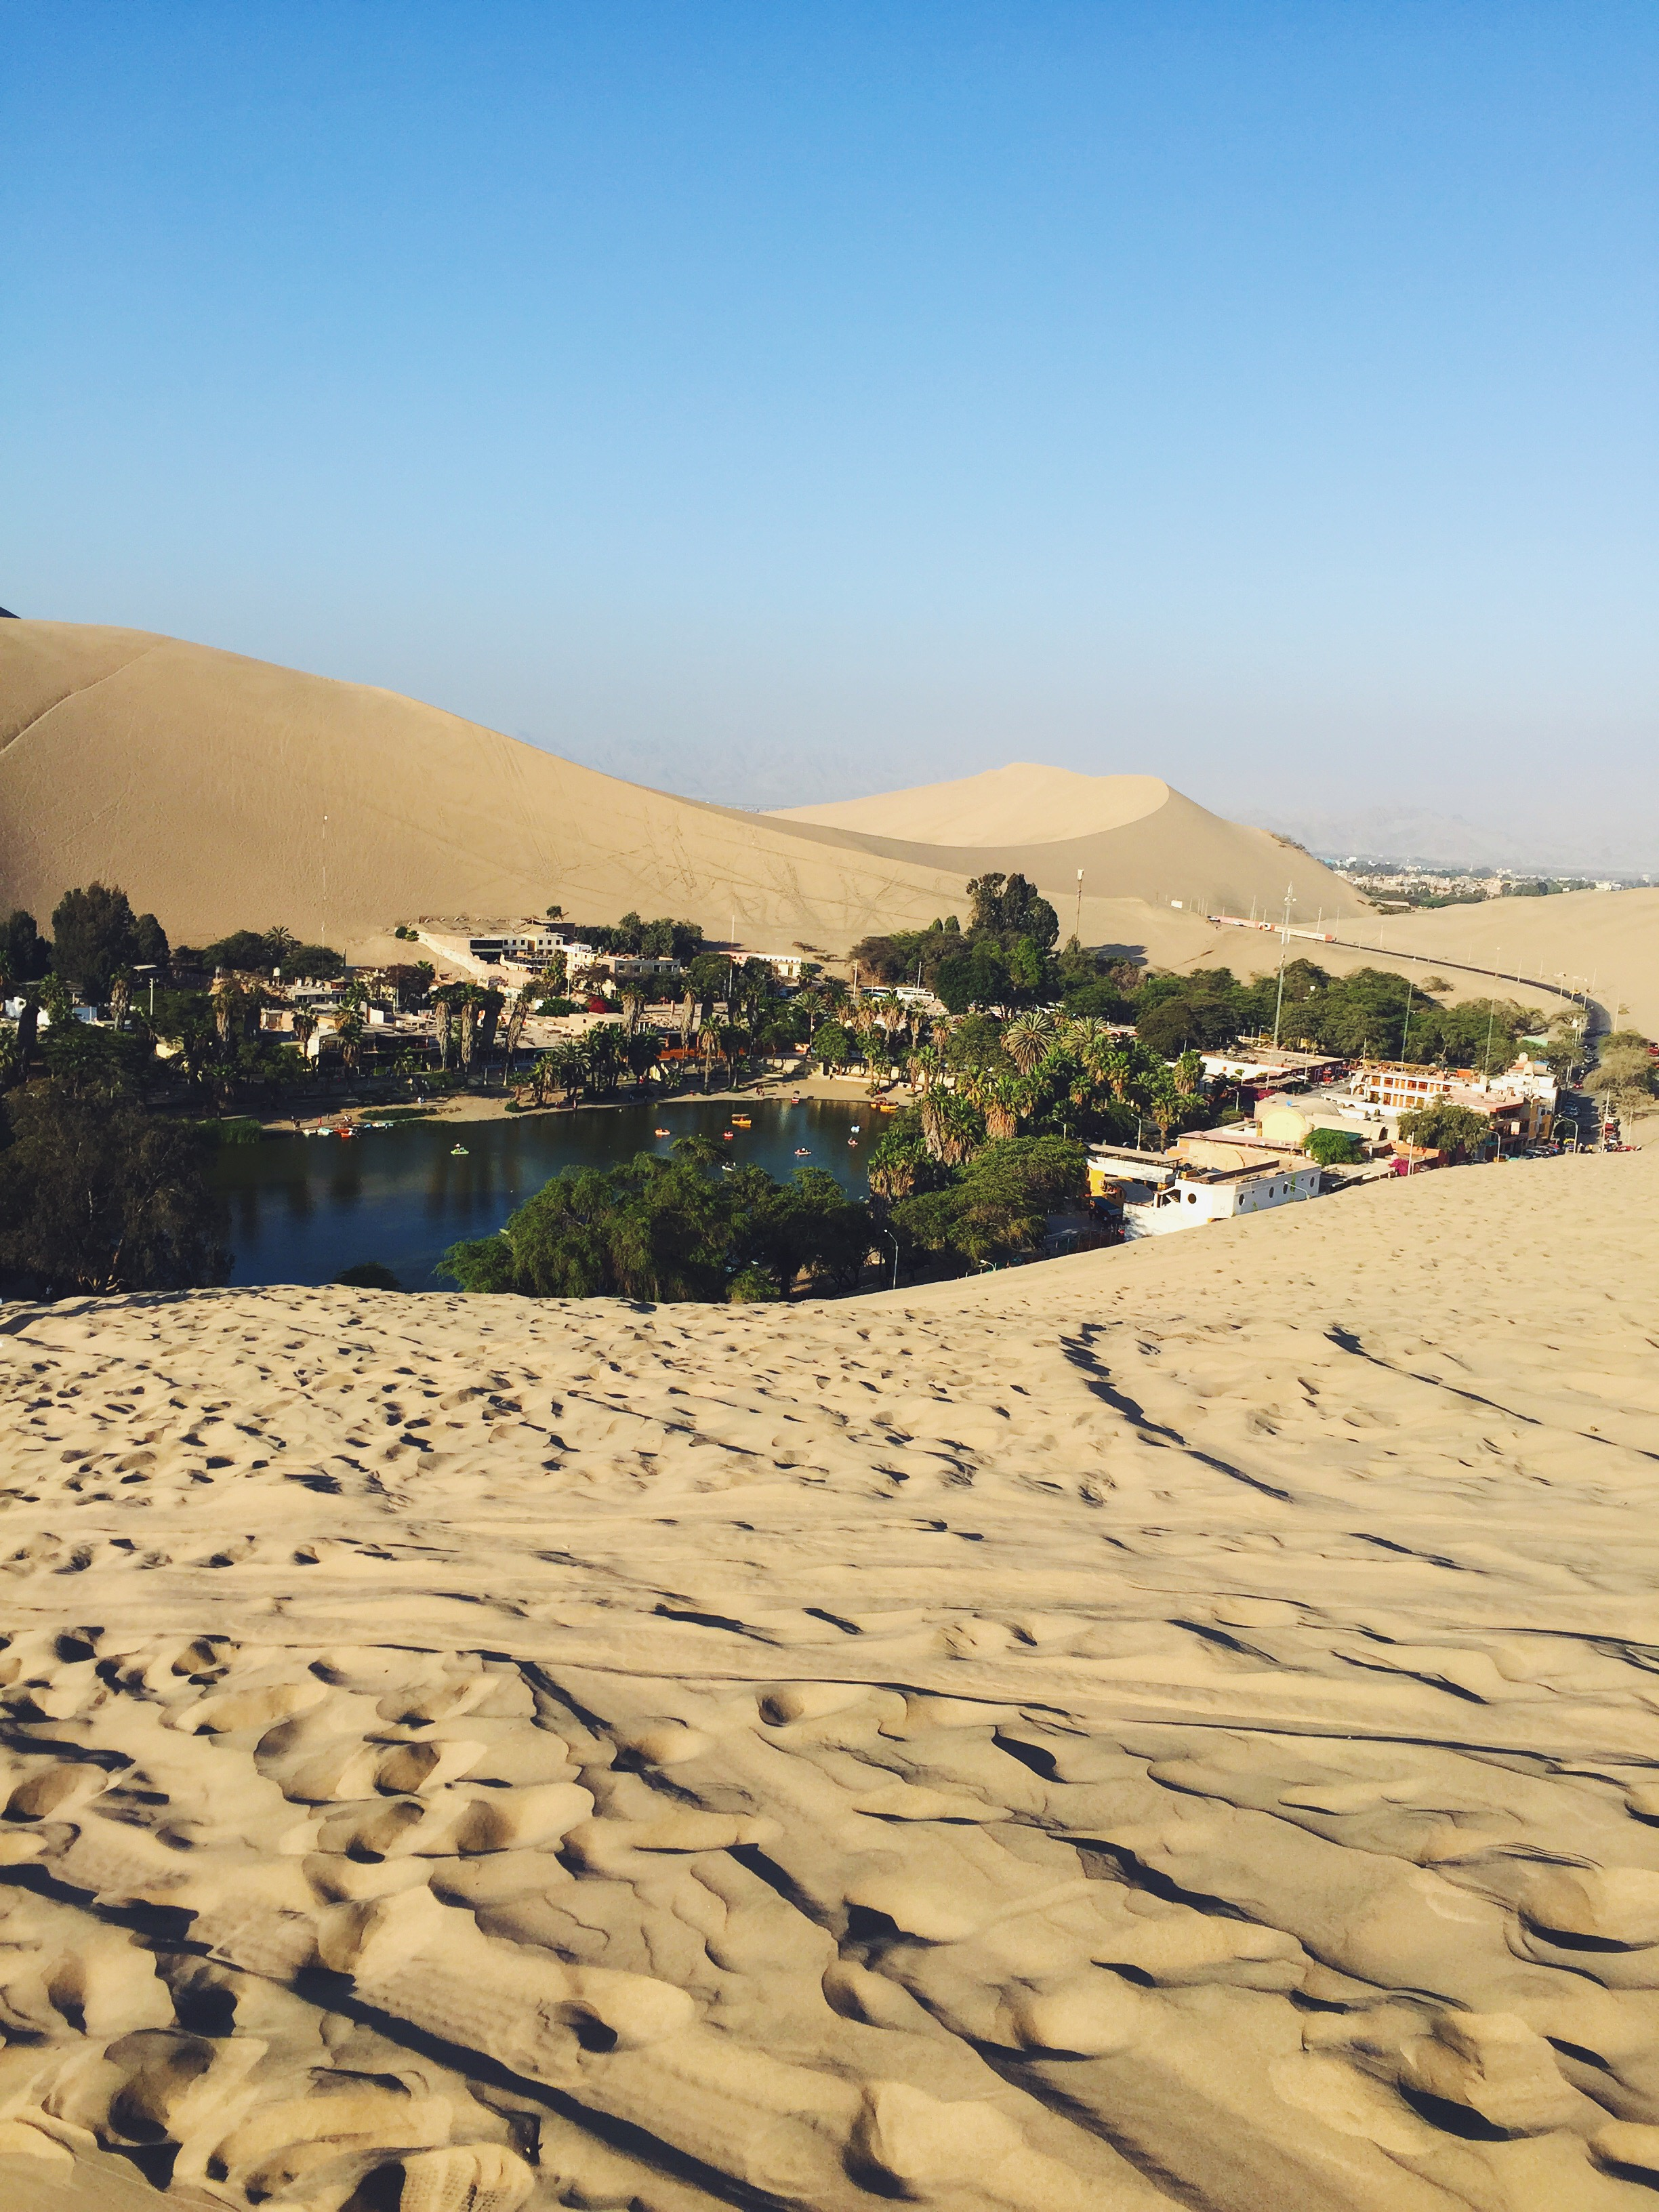 The view of the oasis during the dune buggy ride.